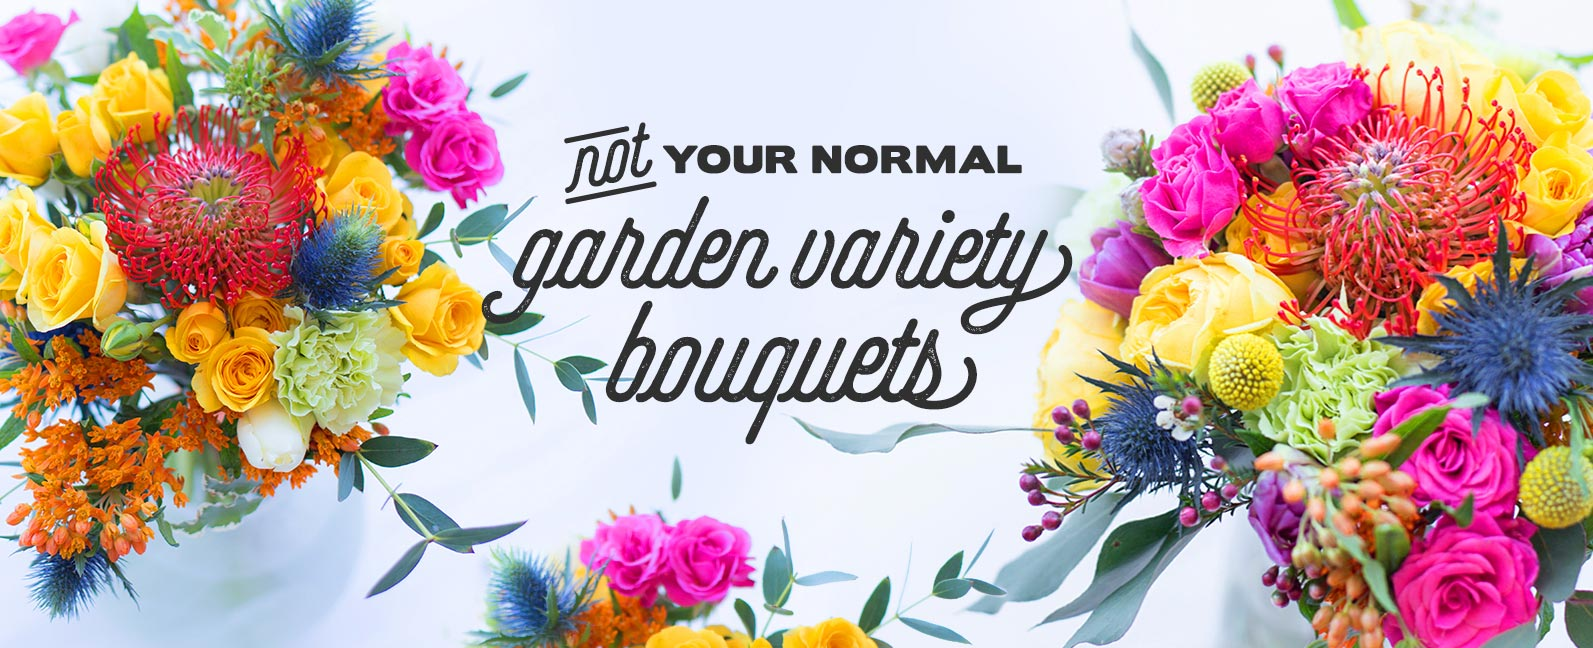 Same Day Flower Delivery Coupons